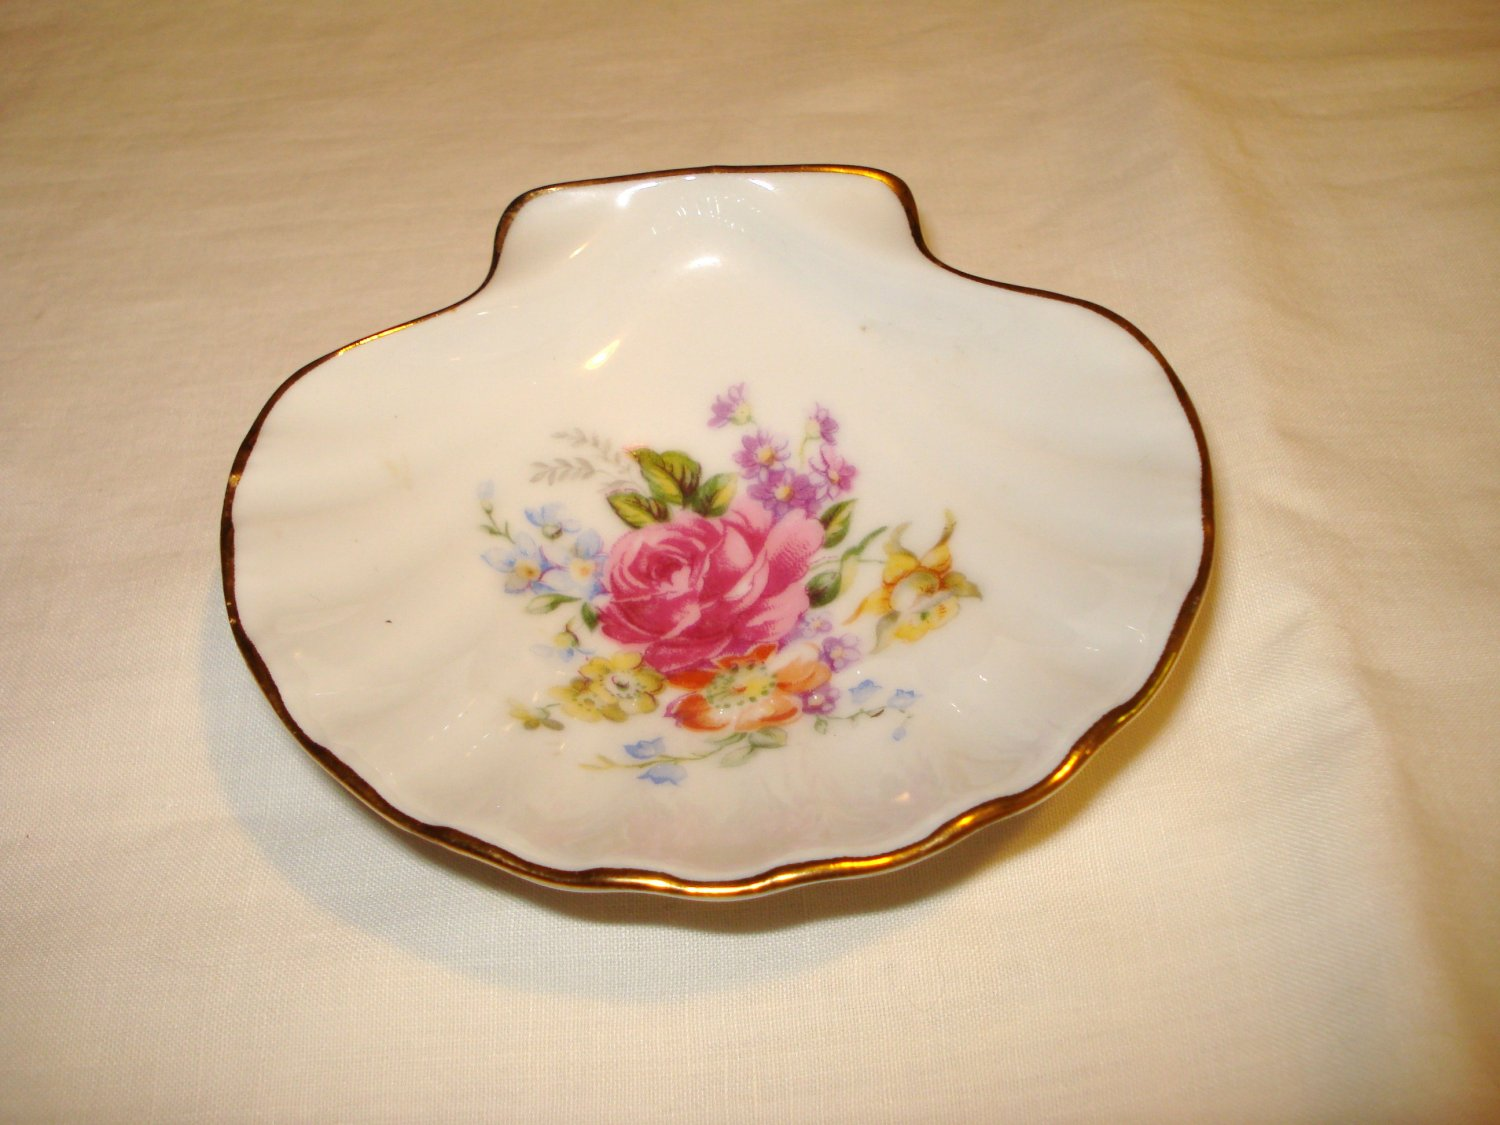 Limoges LEC France porcelain scallop shell dish floral motif gold trim perfect hc2903